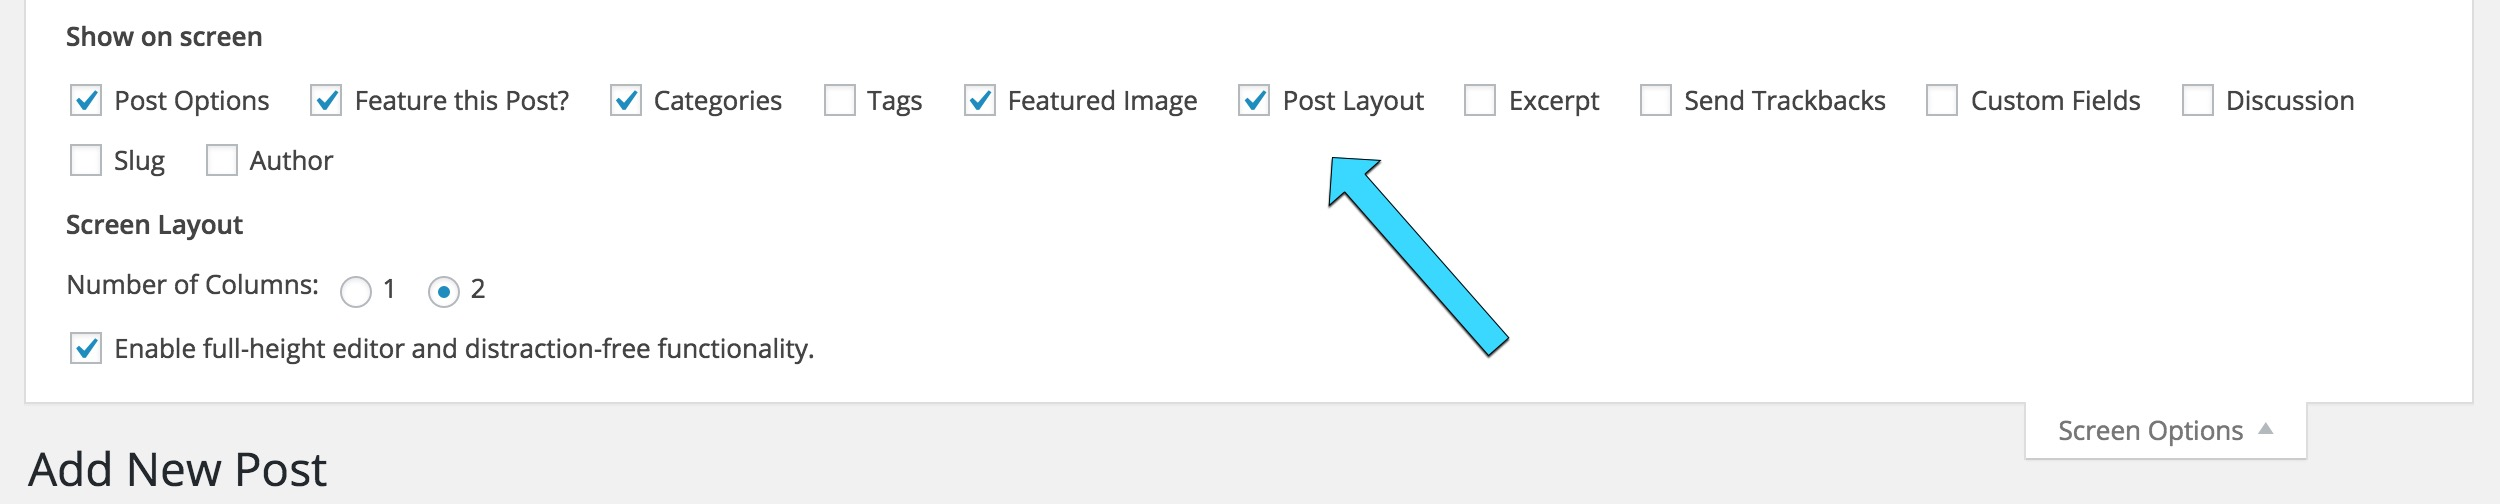 Changing the layouts of posts